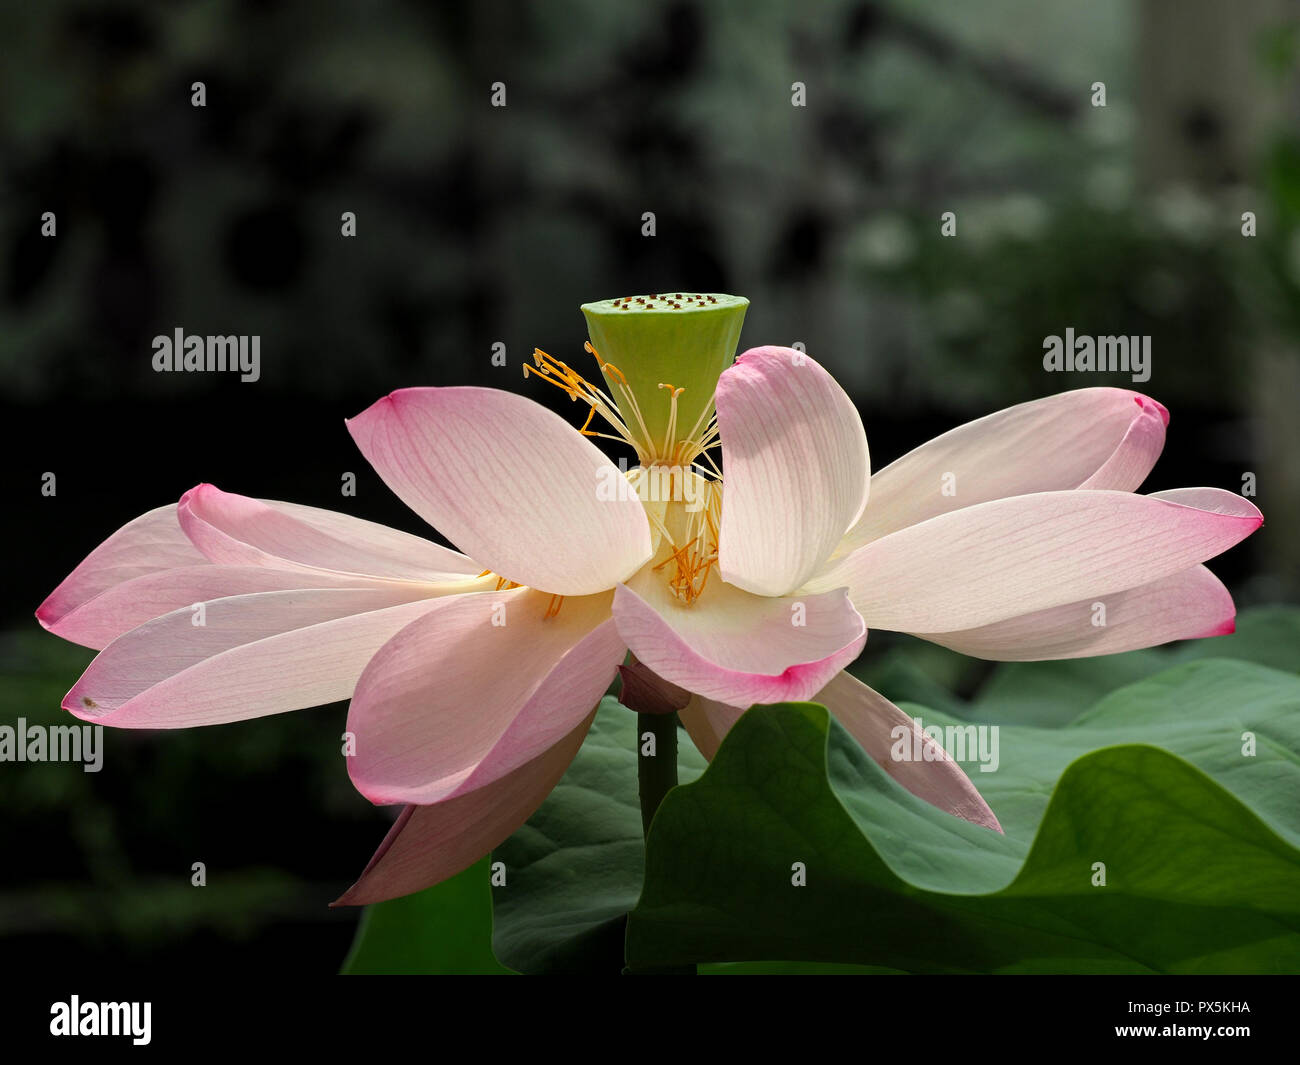 Delicate Pink Petals Yellow Stamens Of Lotus Flower Or Sacred